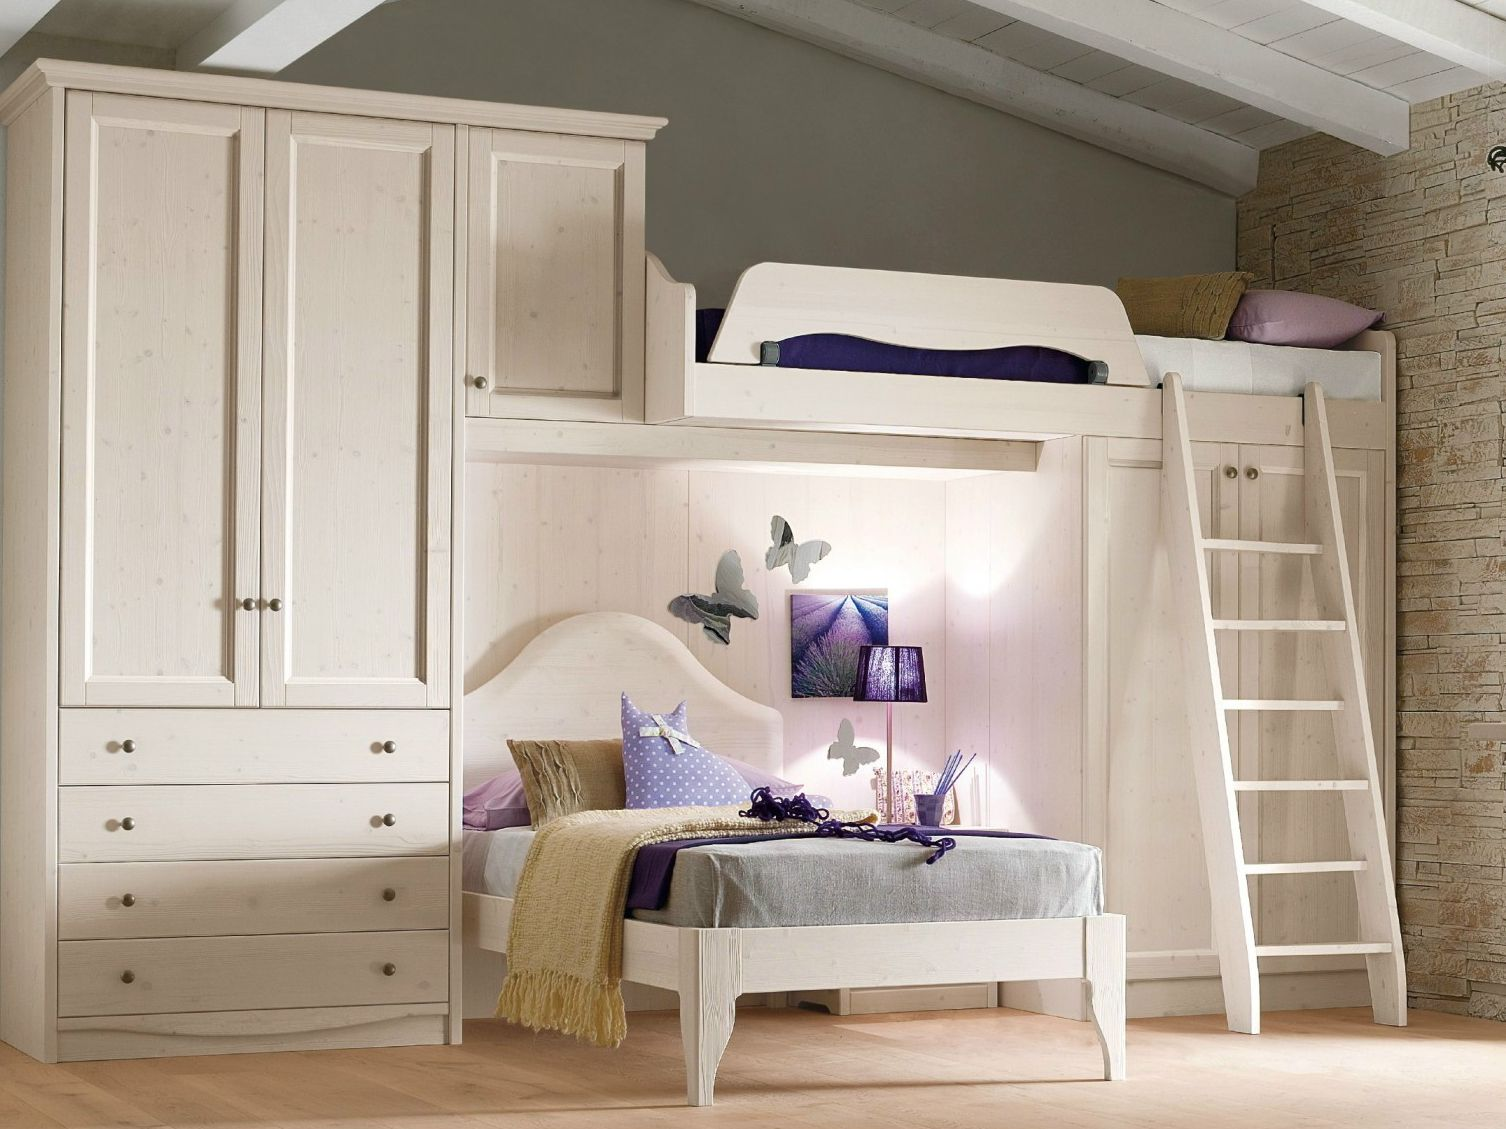 Loft Wooden Bedroom Set Every Day Night Composition 02 By